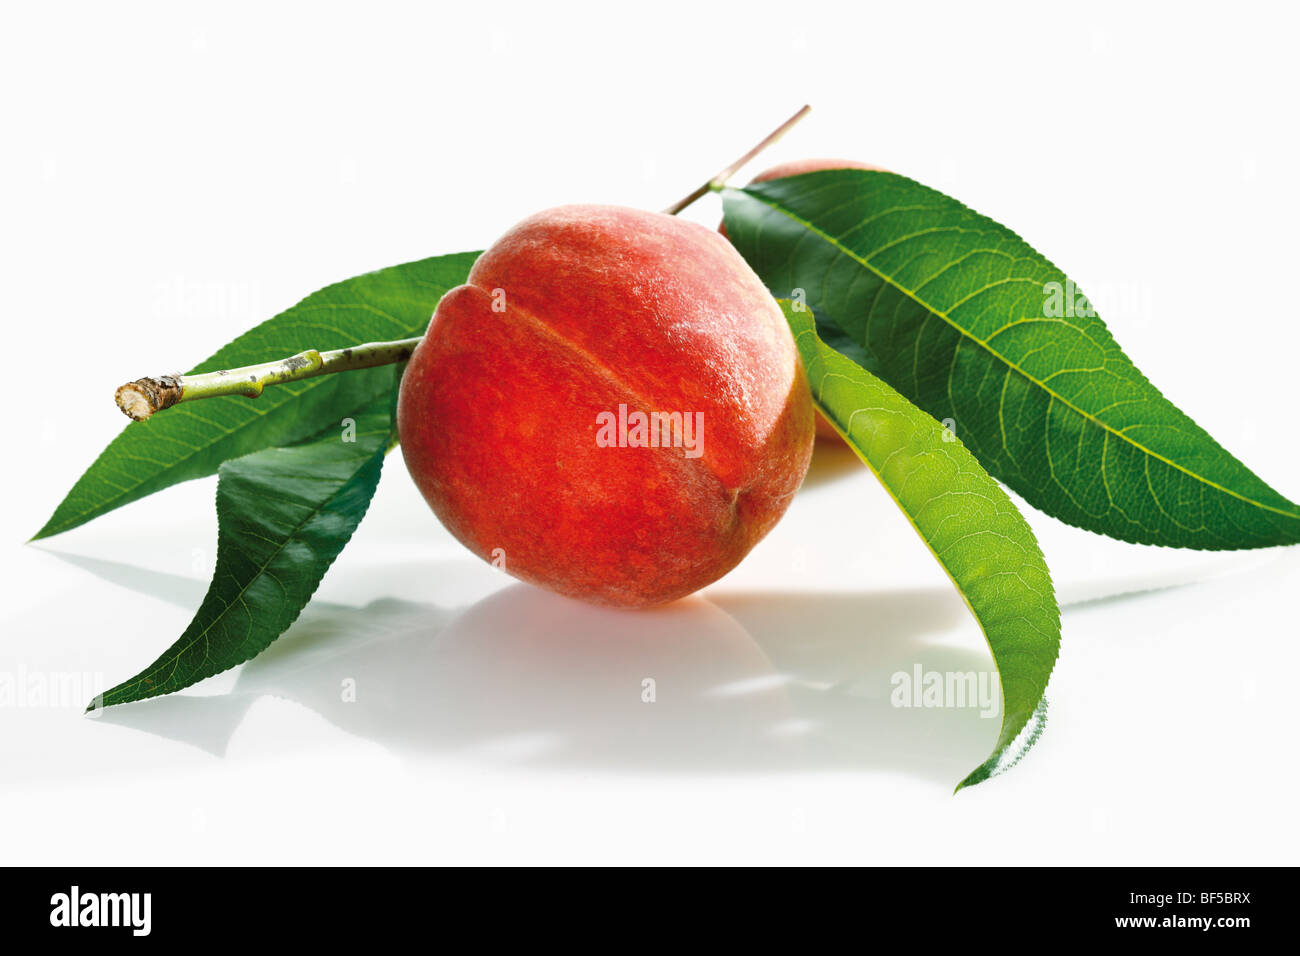 Freshly picked peach with leaves - Stock Image